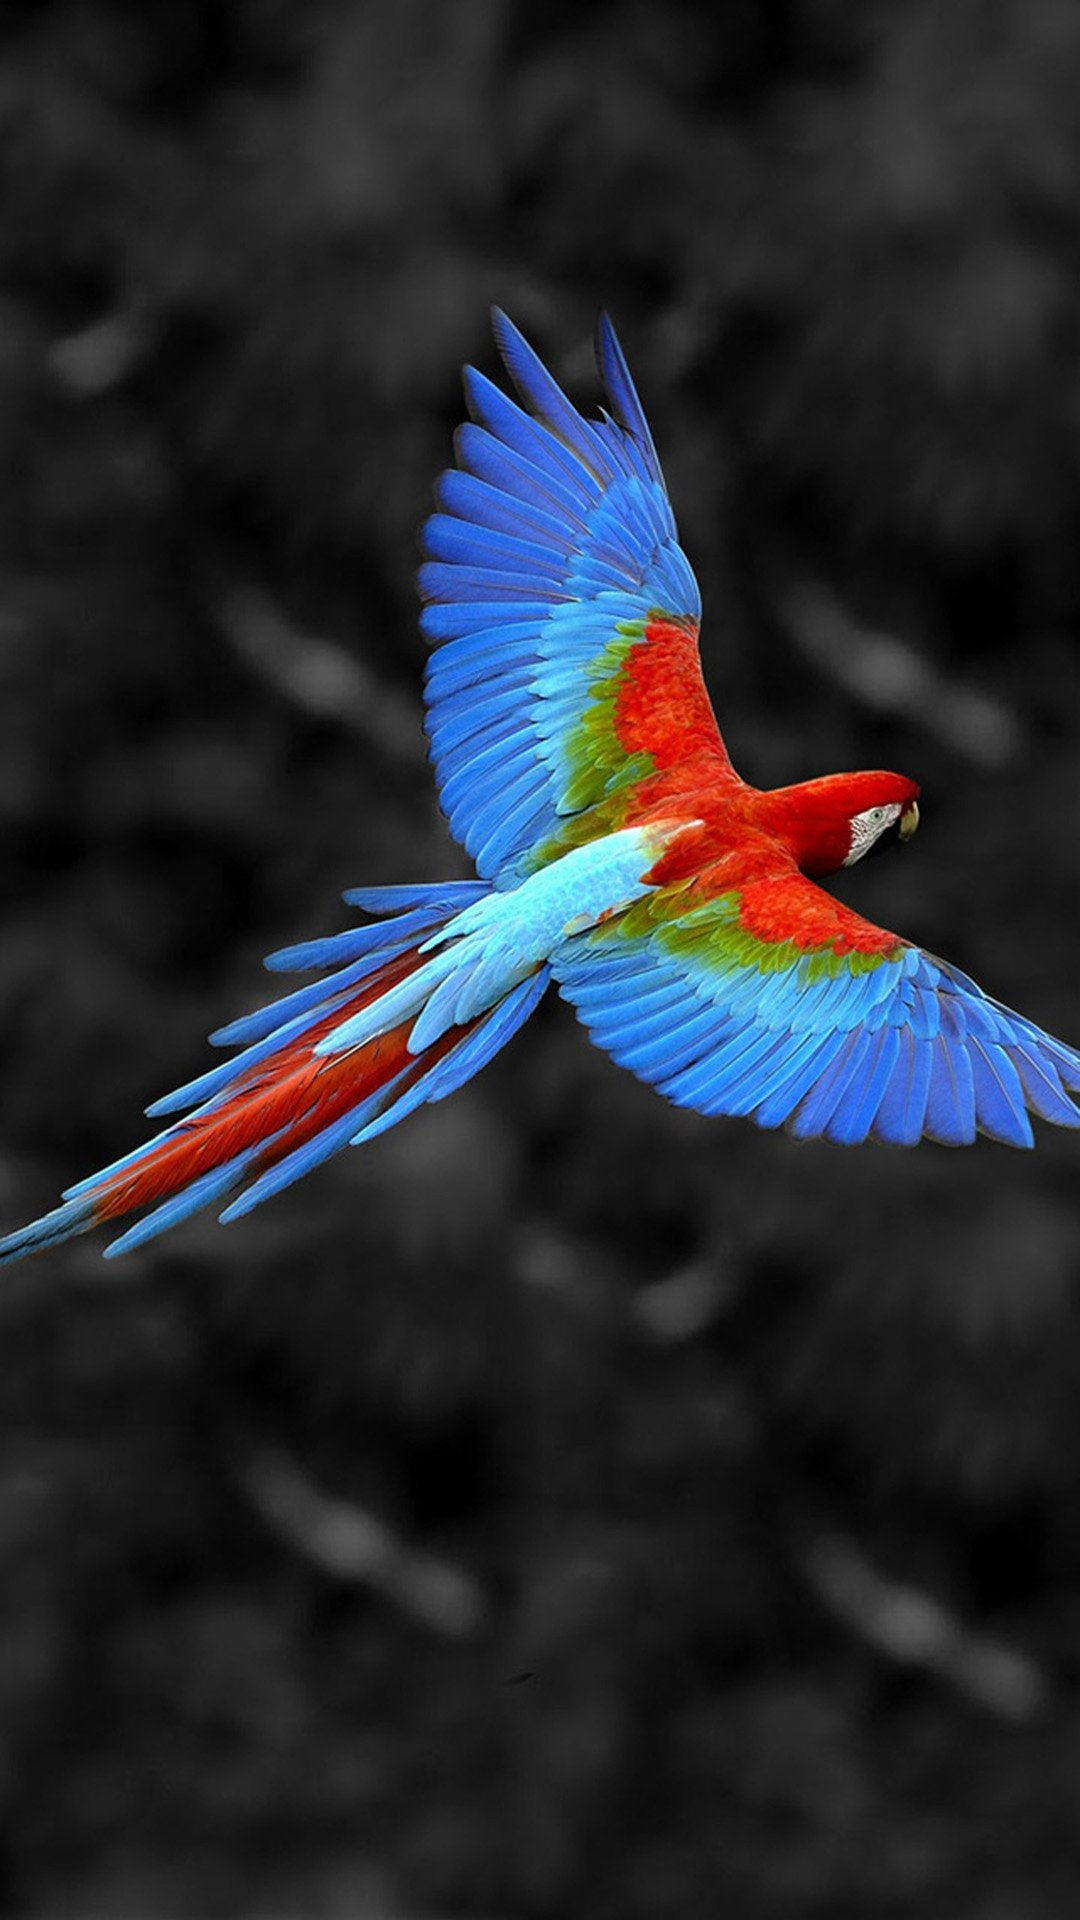 Bird Wallpaper 100 1080x1920 Pixel Wallpaperpass